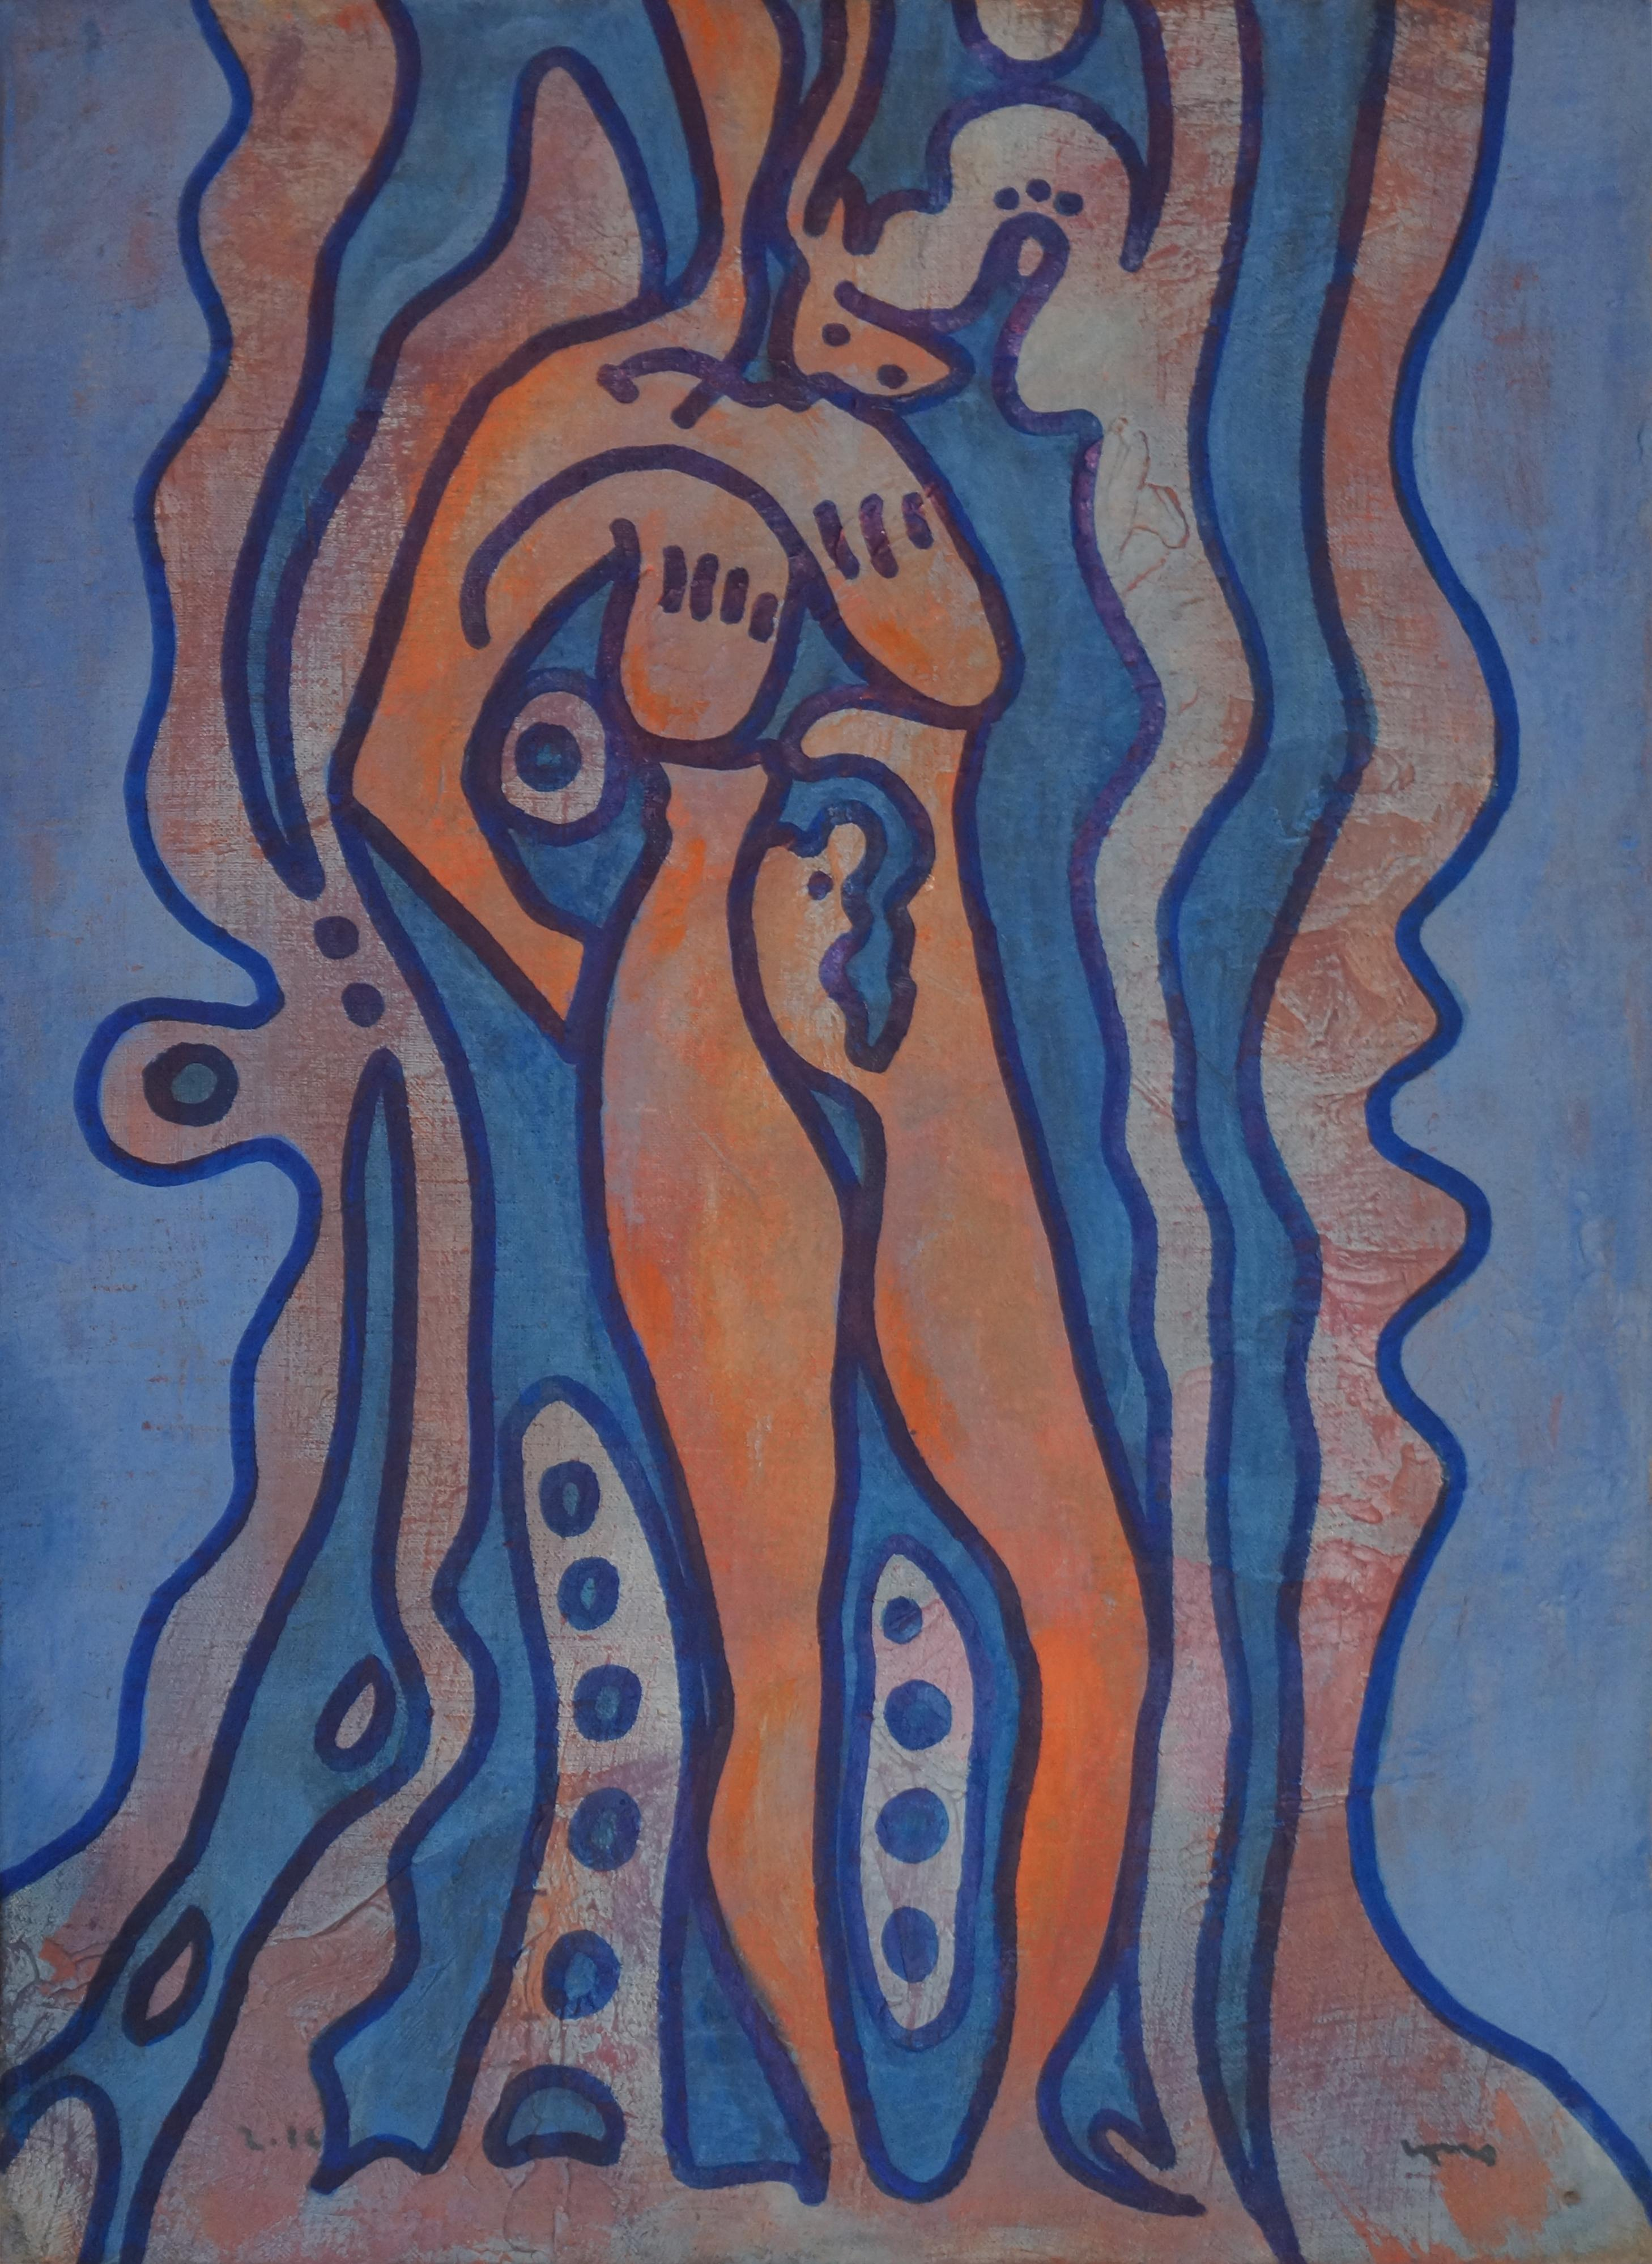 Body, Contemporary Abstract Art Painting Expressionist Blue Orange Female Woman